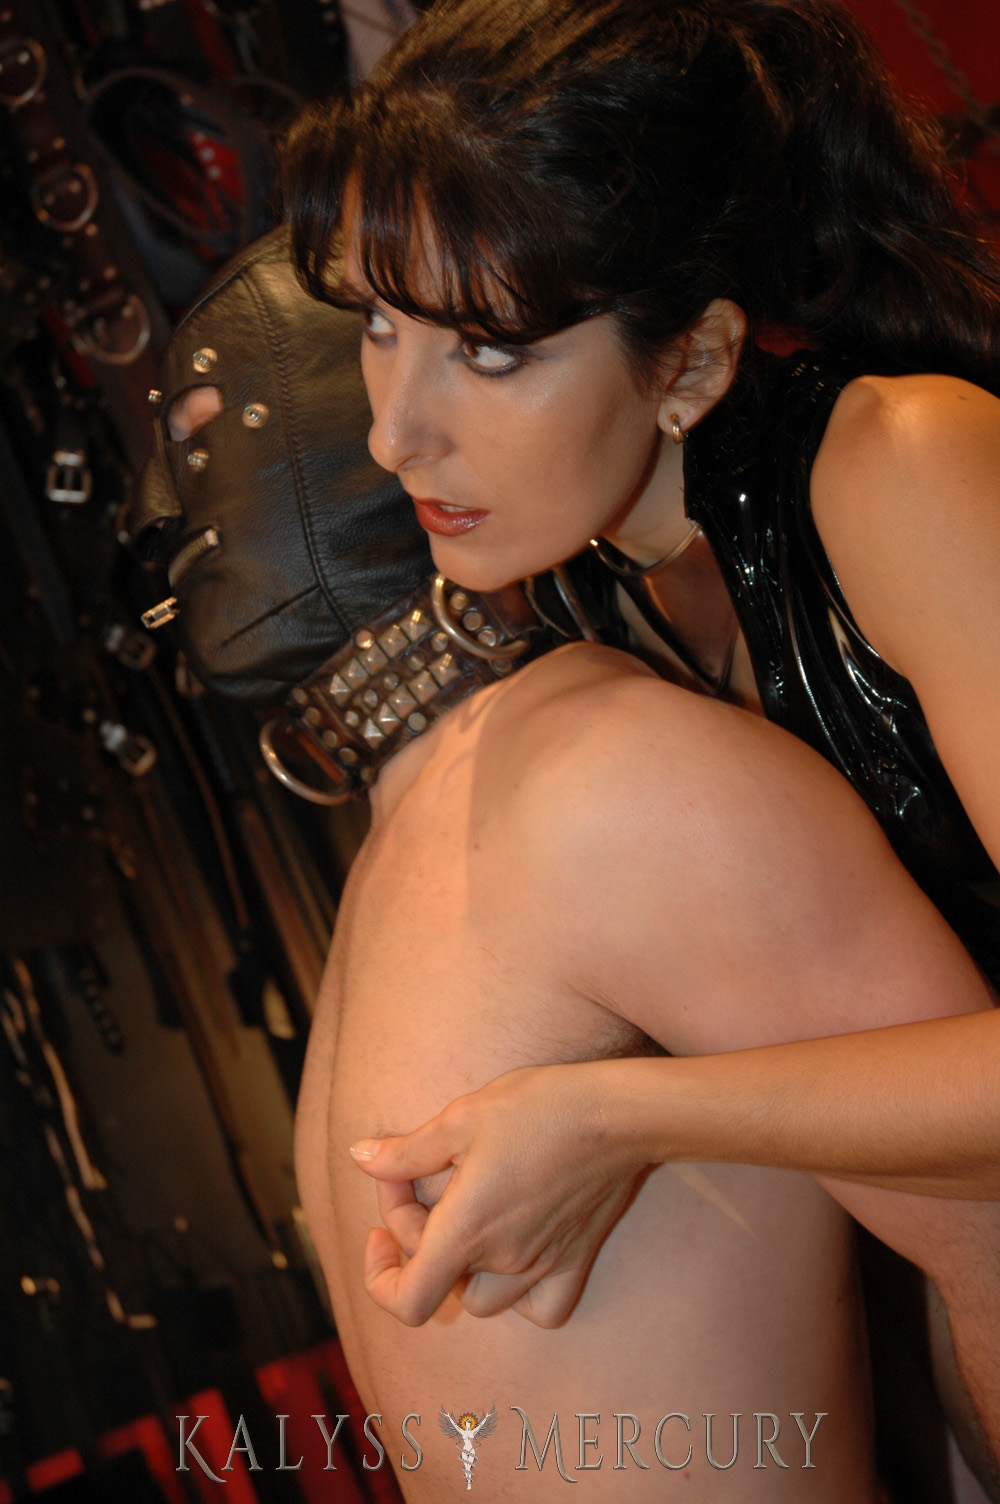 Salon Bdsm Bdsm Fetish Bdsm Mistress Kitty Salon